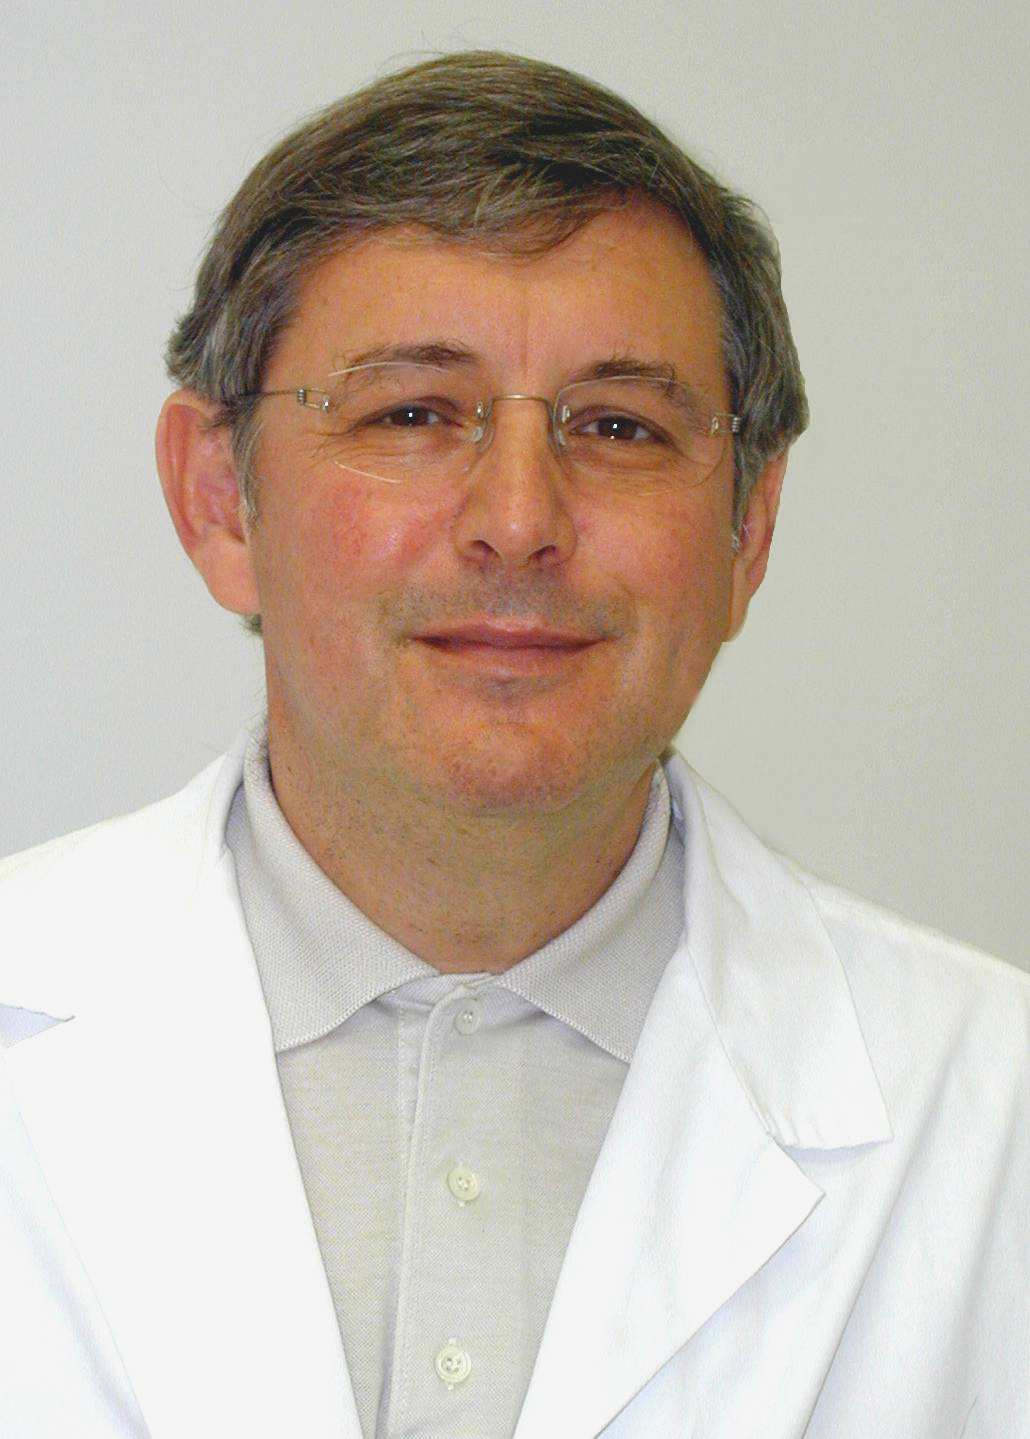 Dr. Guy Tremblay